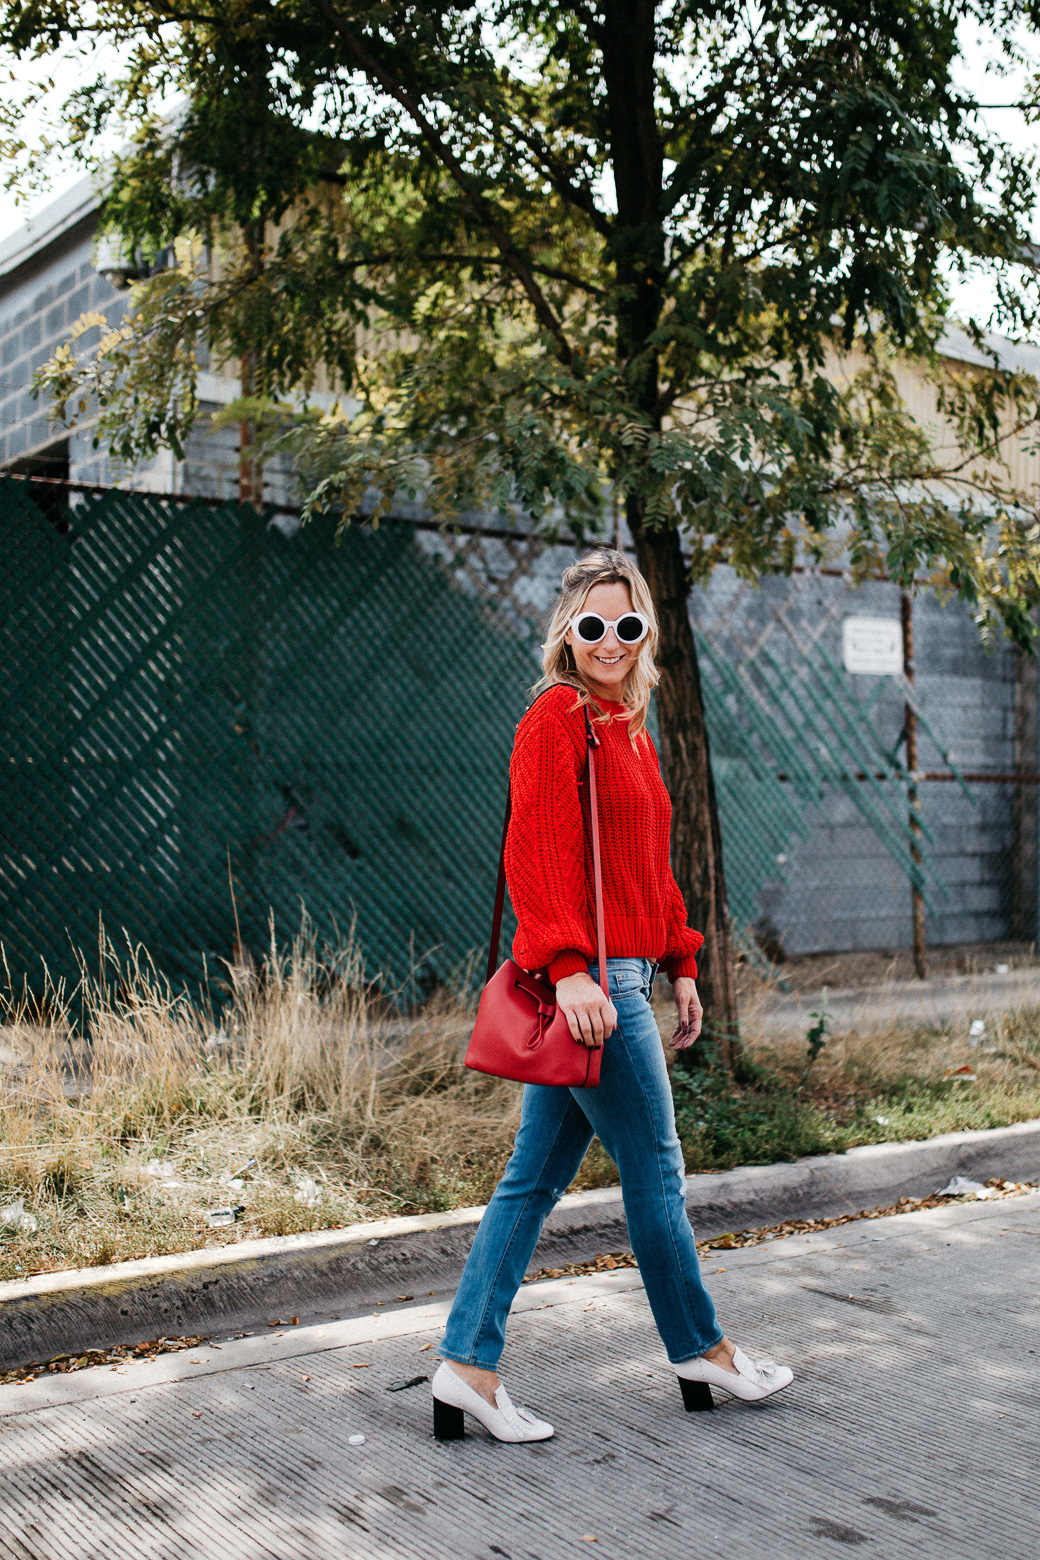 a red sweater with a high neck and sunglasses